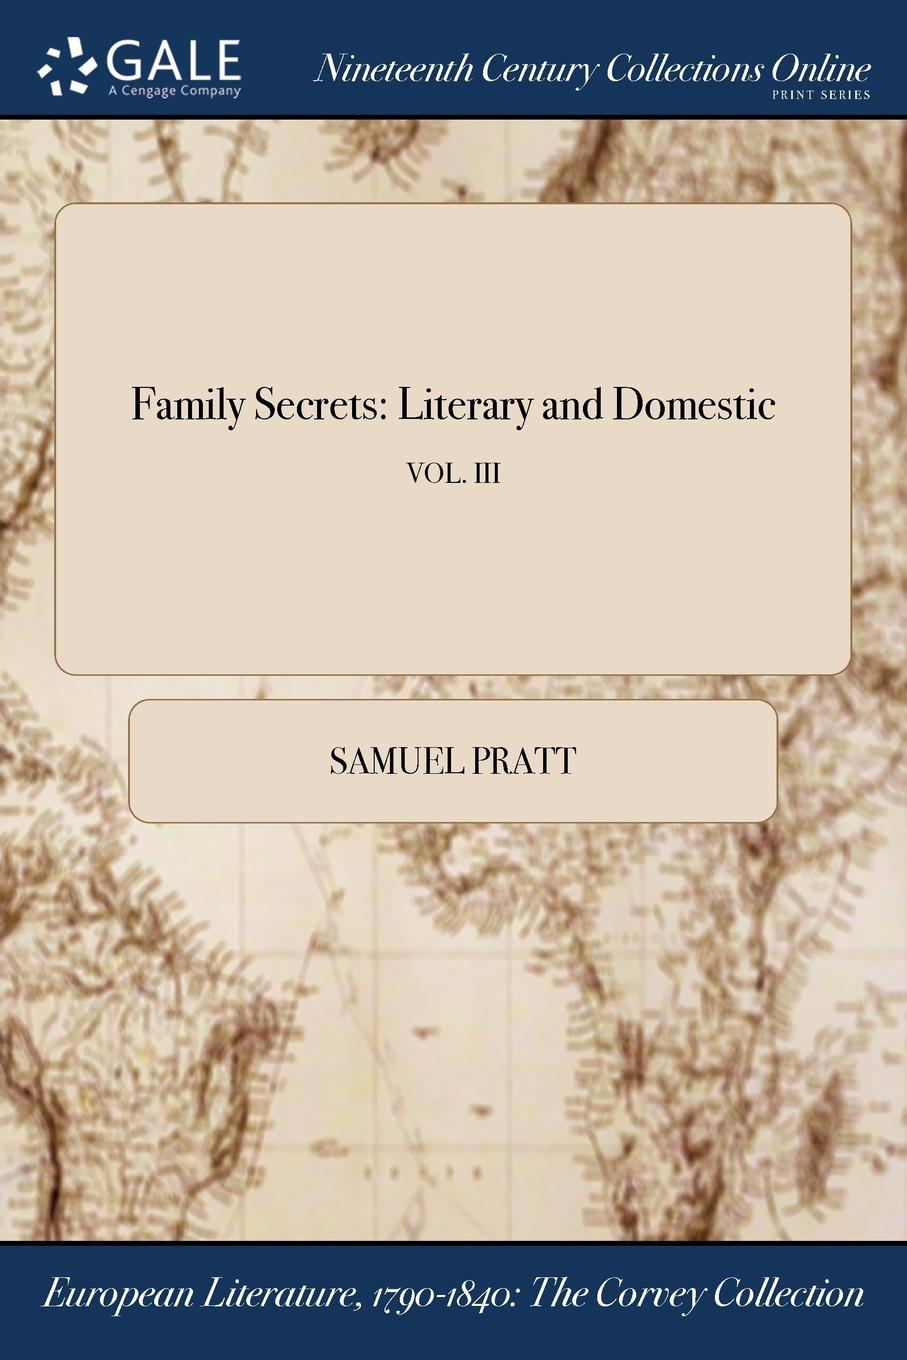 Samuel Pratt Family Secrets. Literary and Domestic; VOL. III